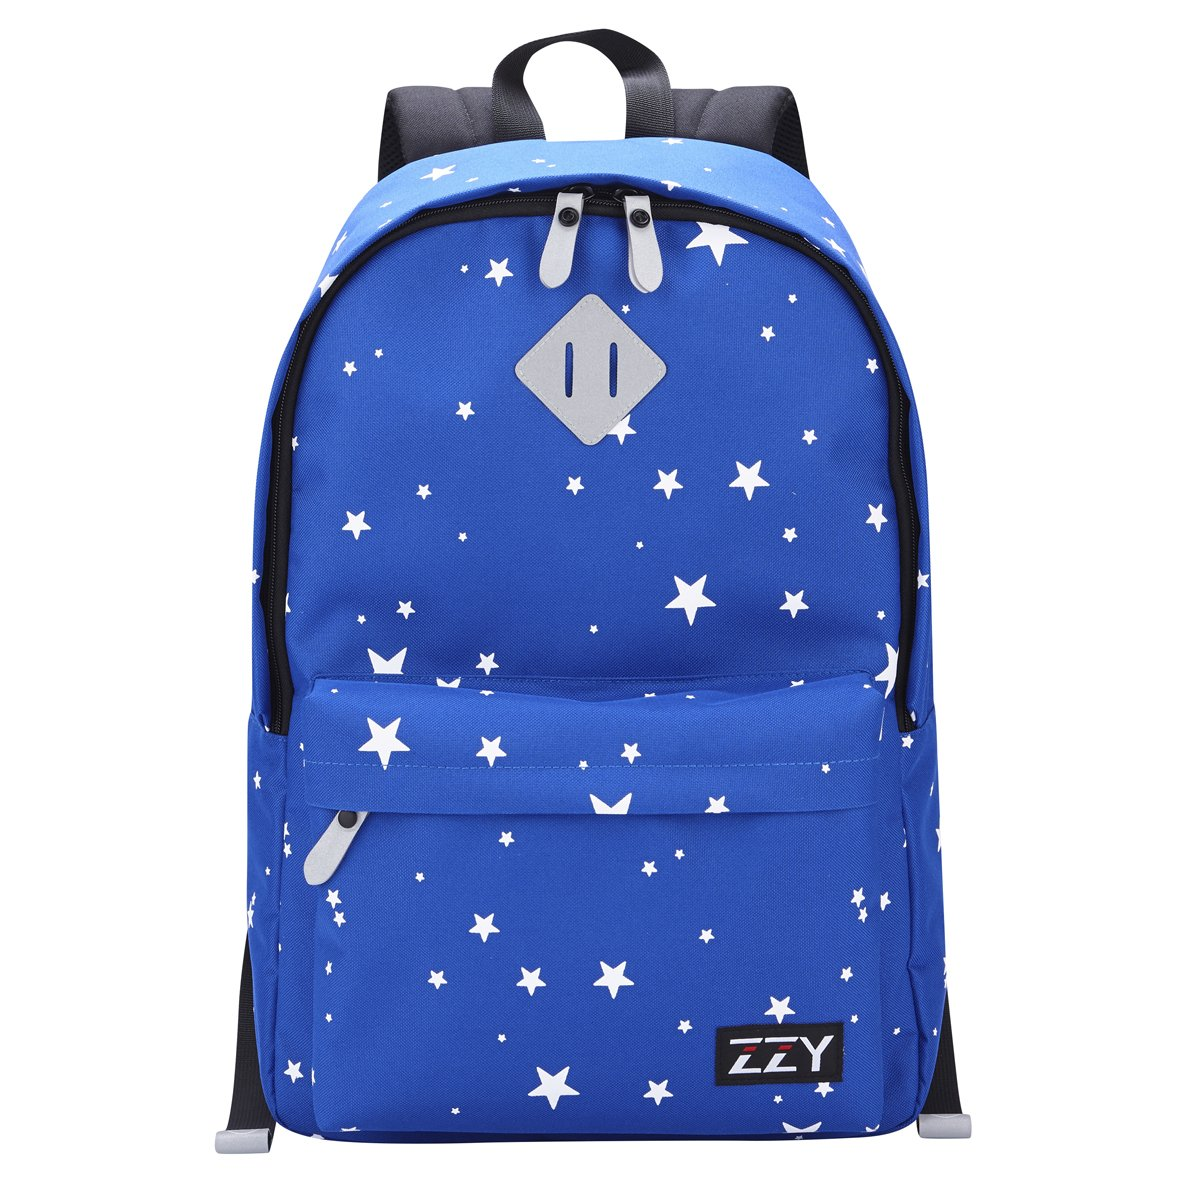 School Backpack Teens 20L for Kids' Backpacks with Lightweight Fits 14 inch Laptop (Sky Green) LTD RMB00267